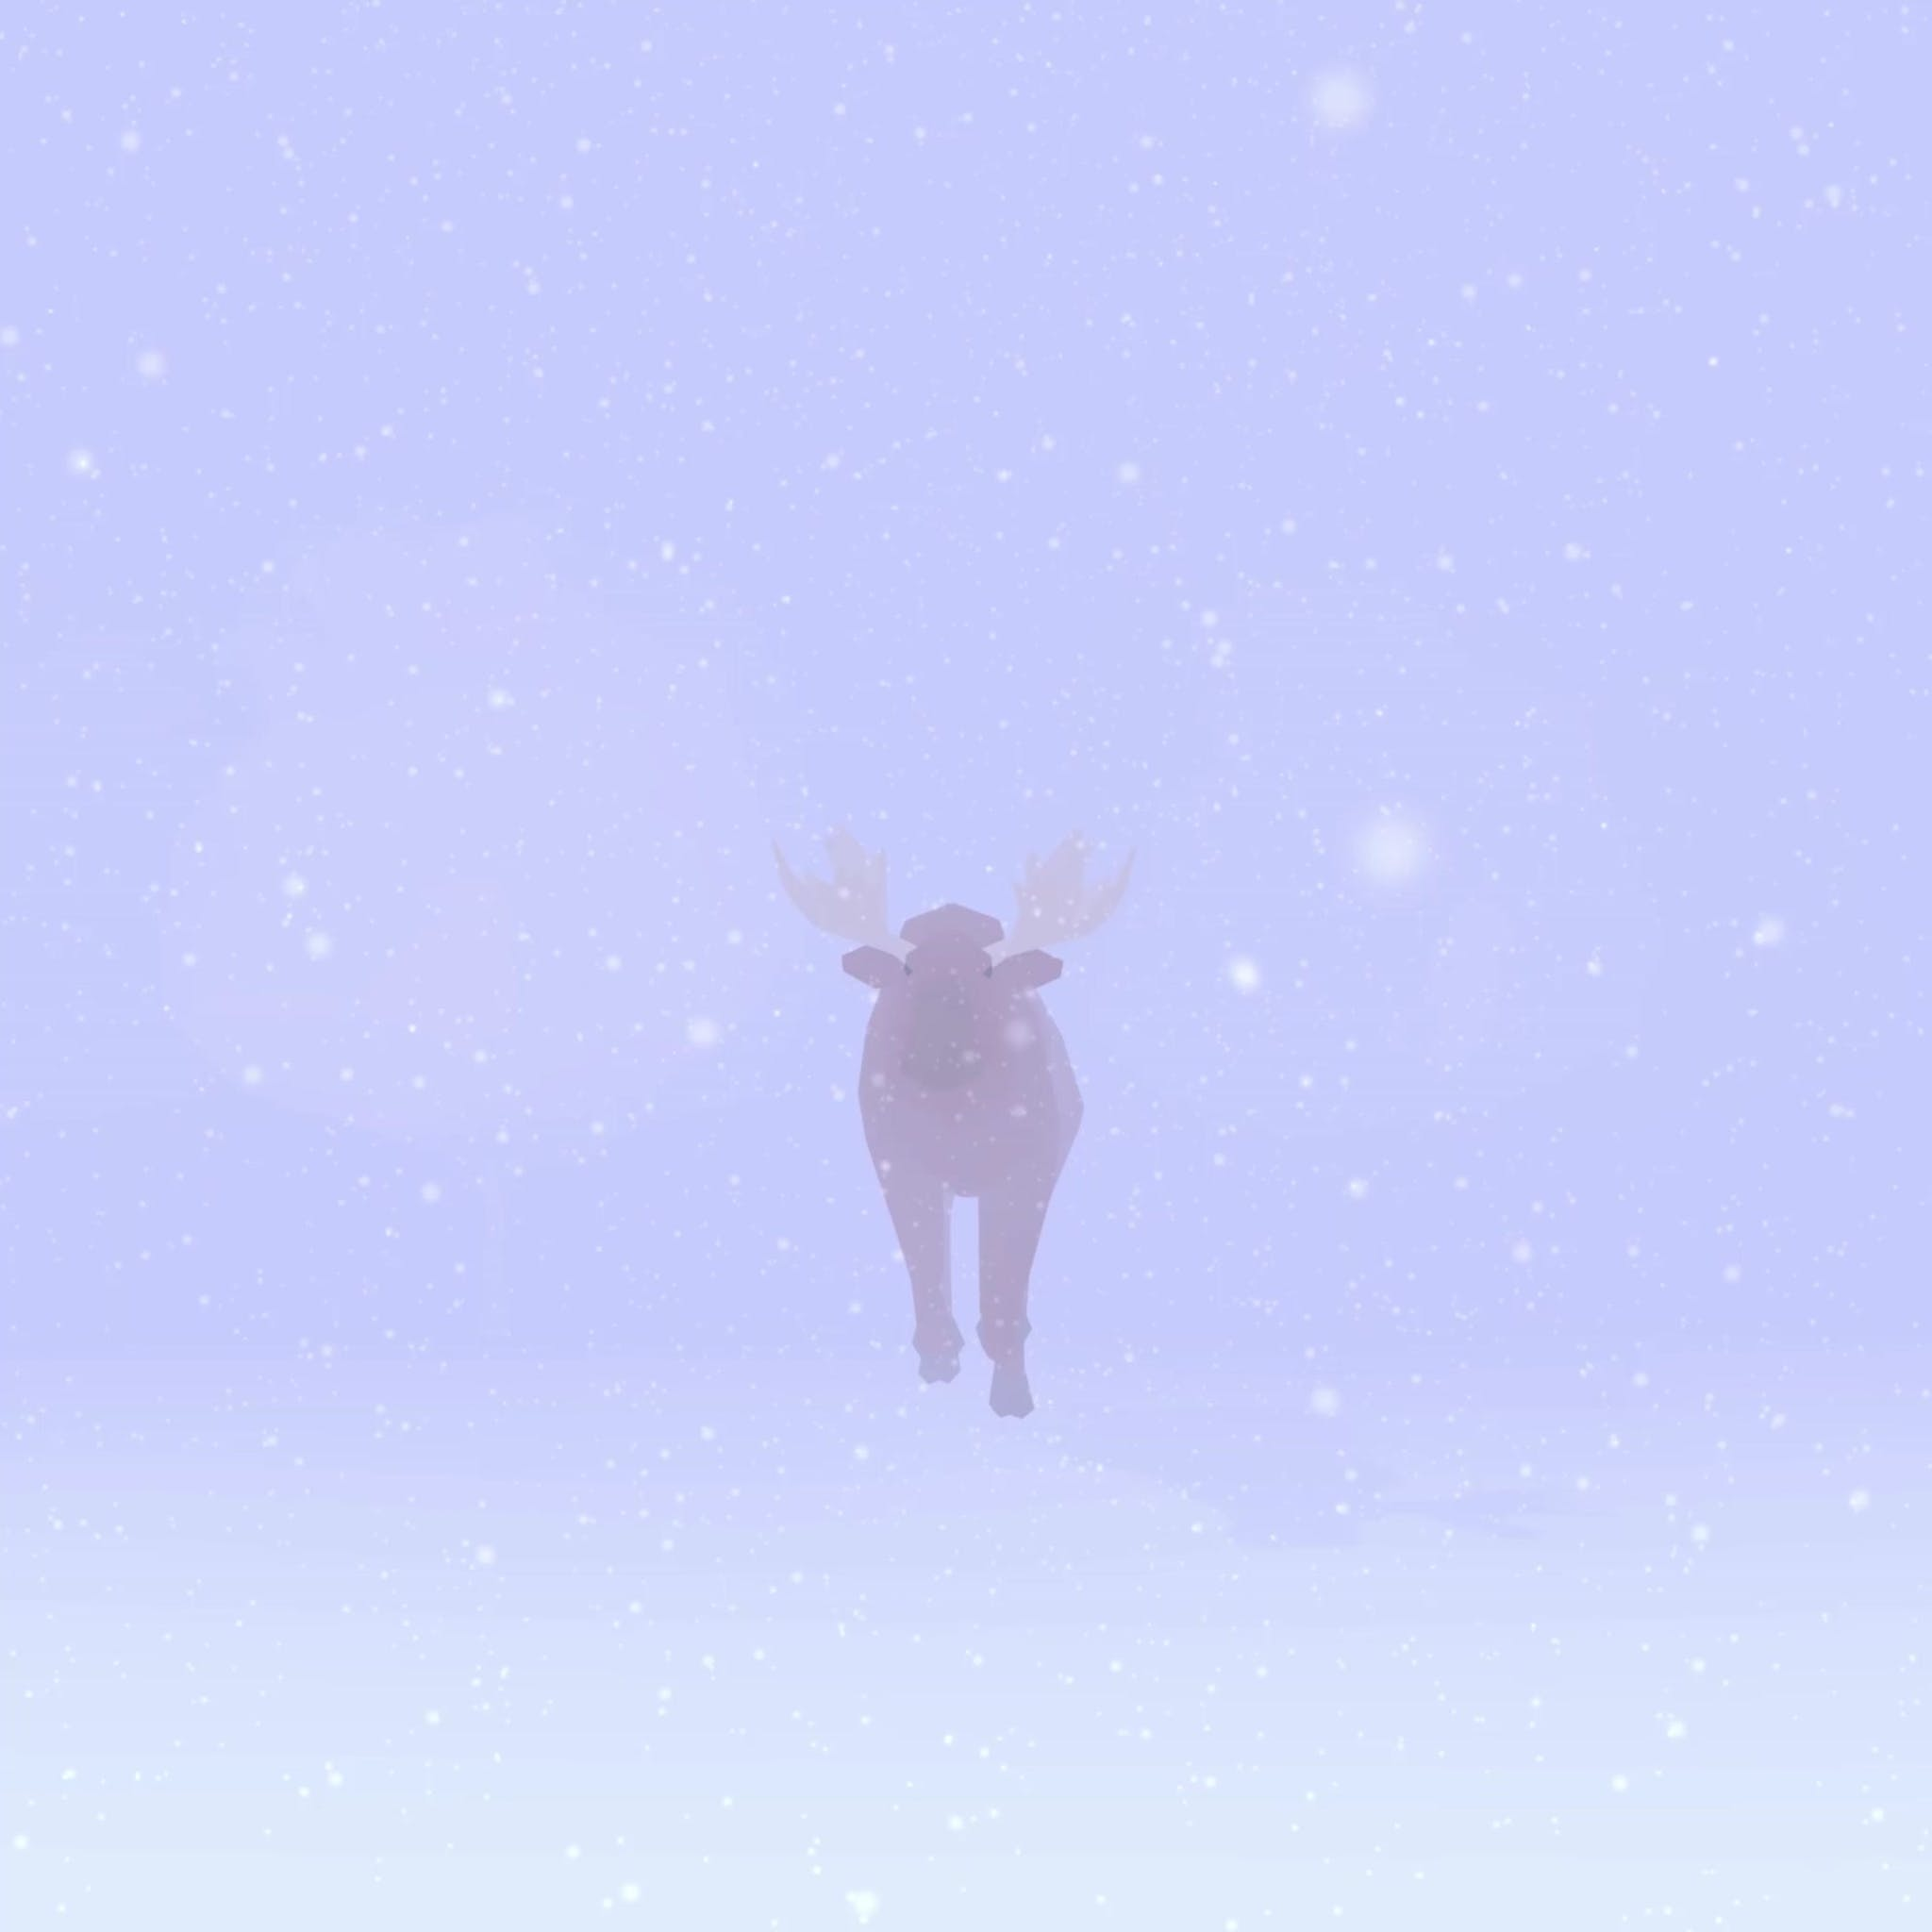 3d Moose in the middle of a snowy forest